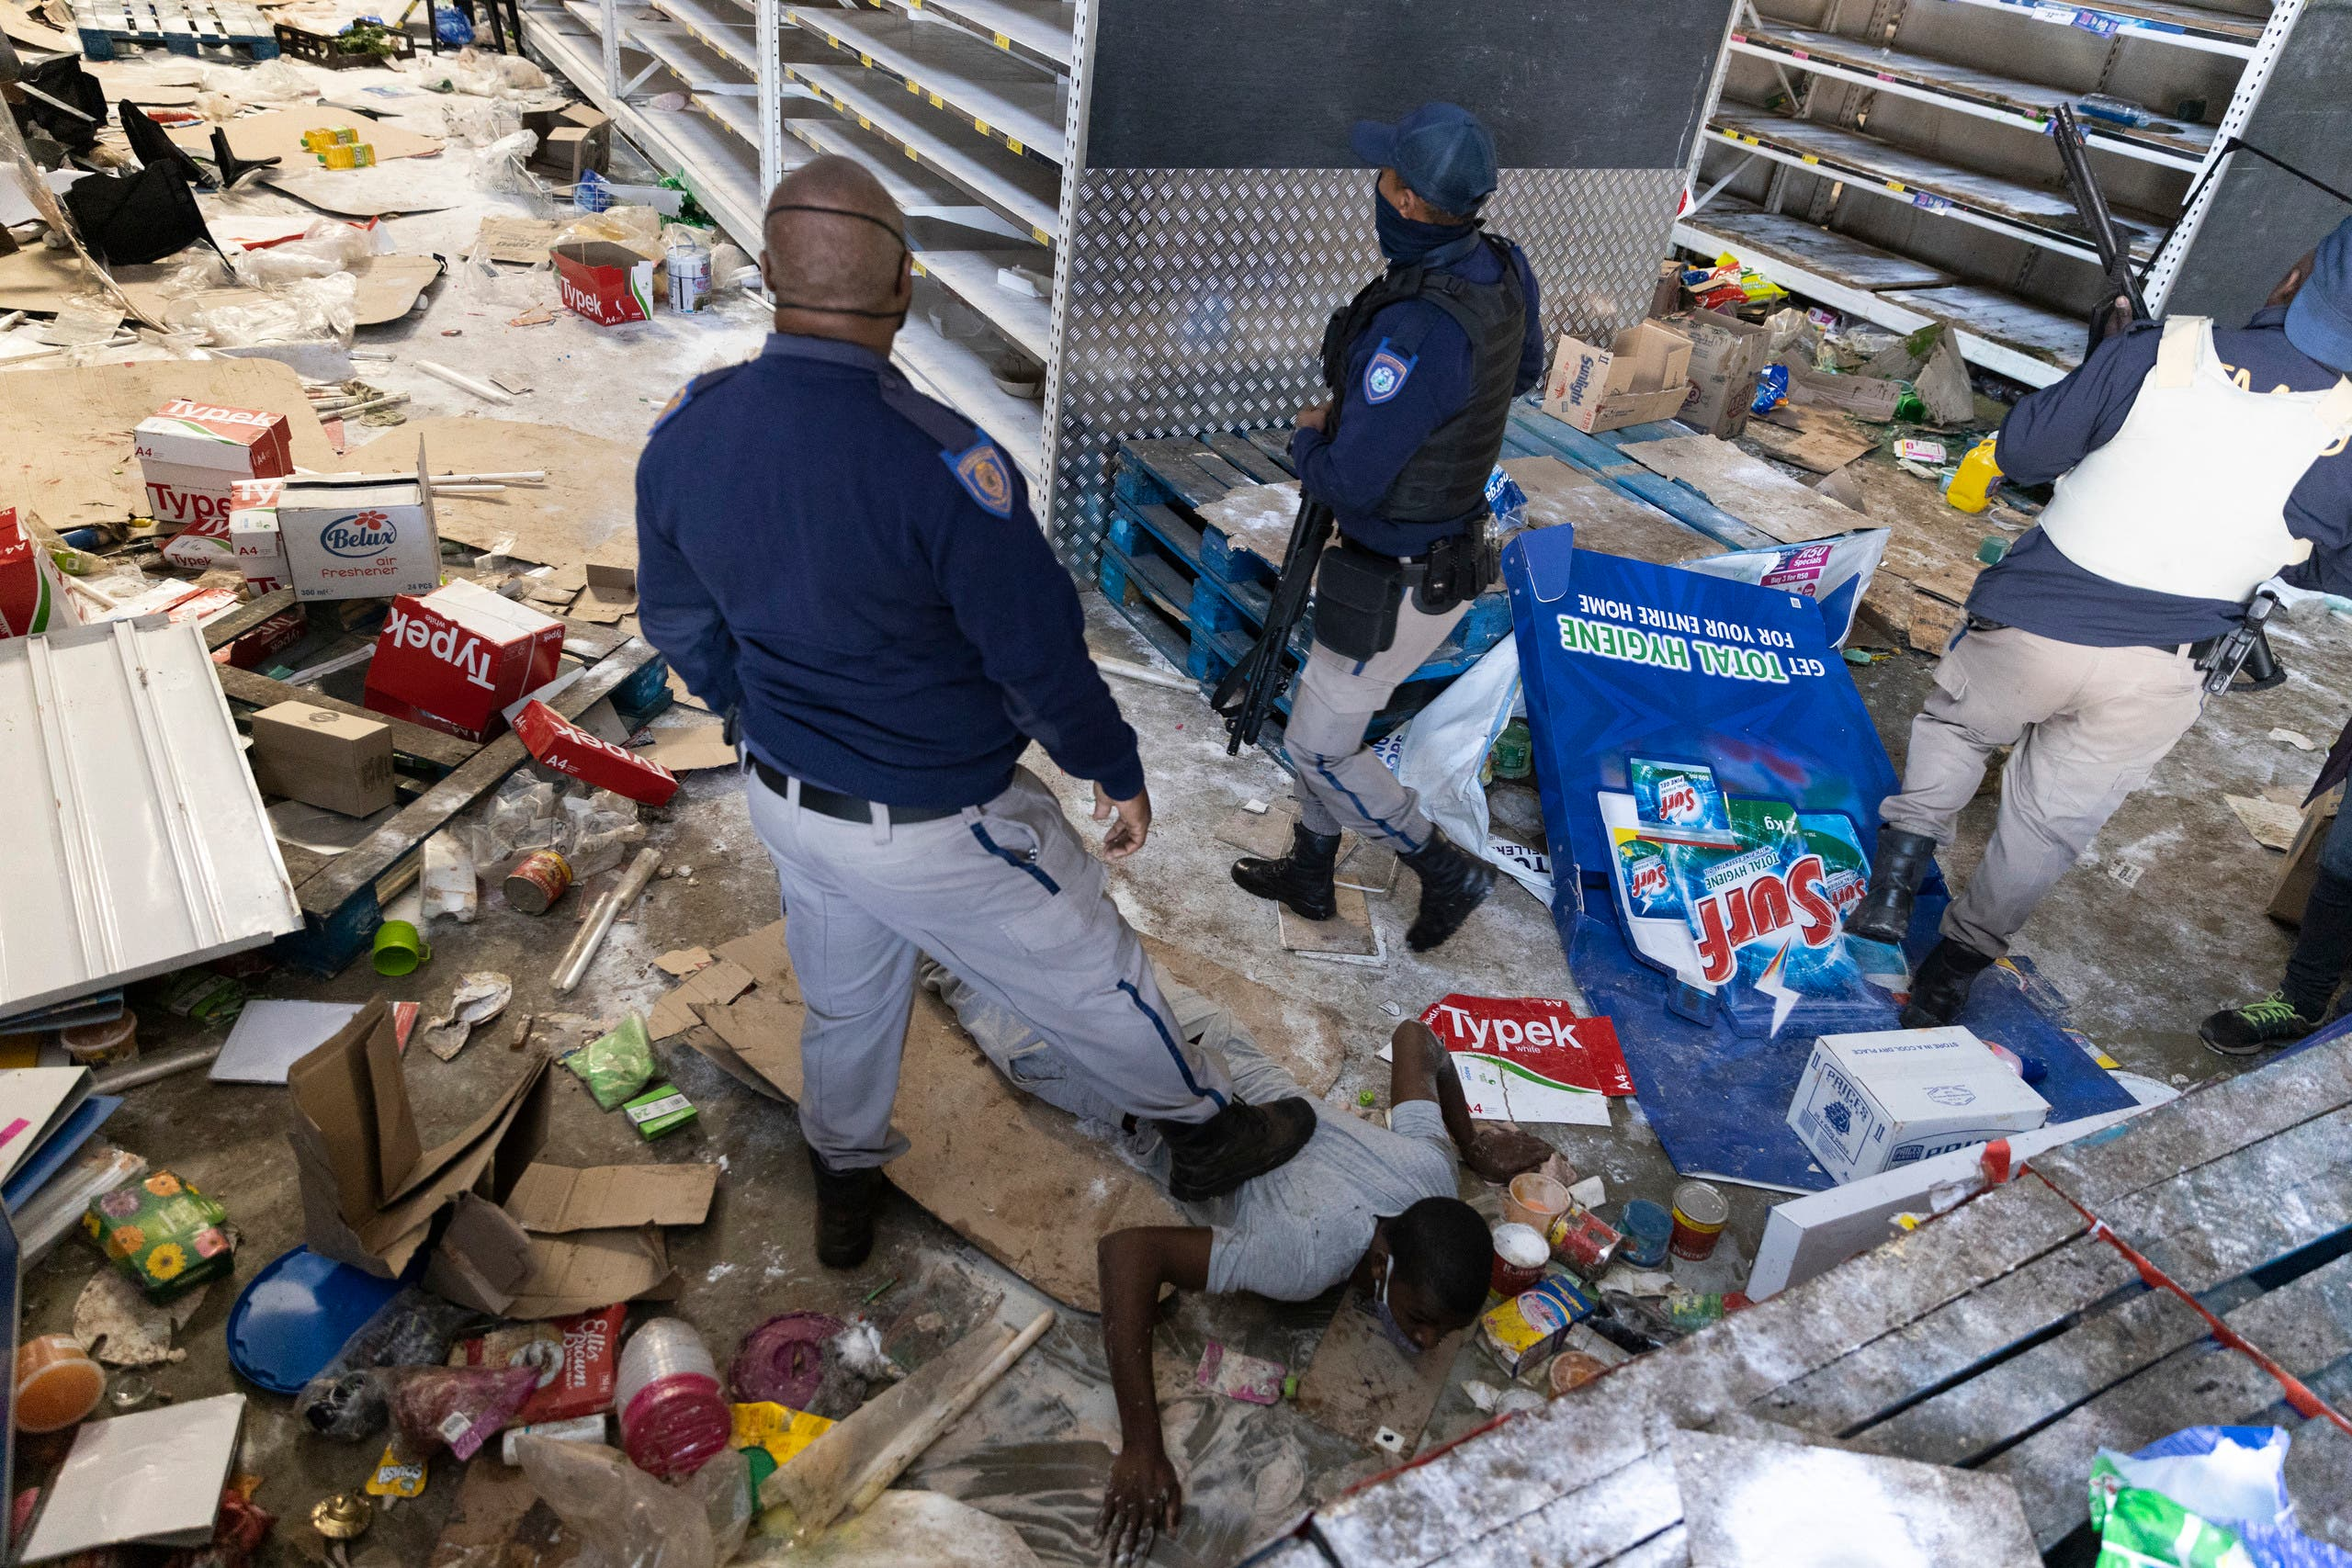 South African Police Services (SAPS) members arrest a looter at the Gold Spot Shopping Centre in Vosloorus, southeast of Johannesburg, on July 12, 2021. (File photo: AFP)